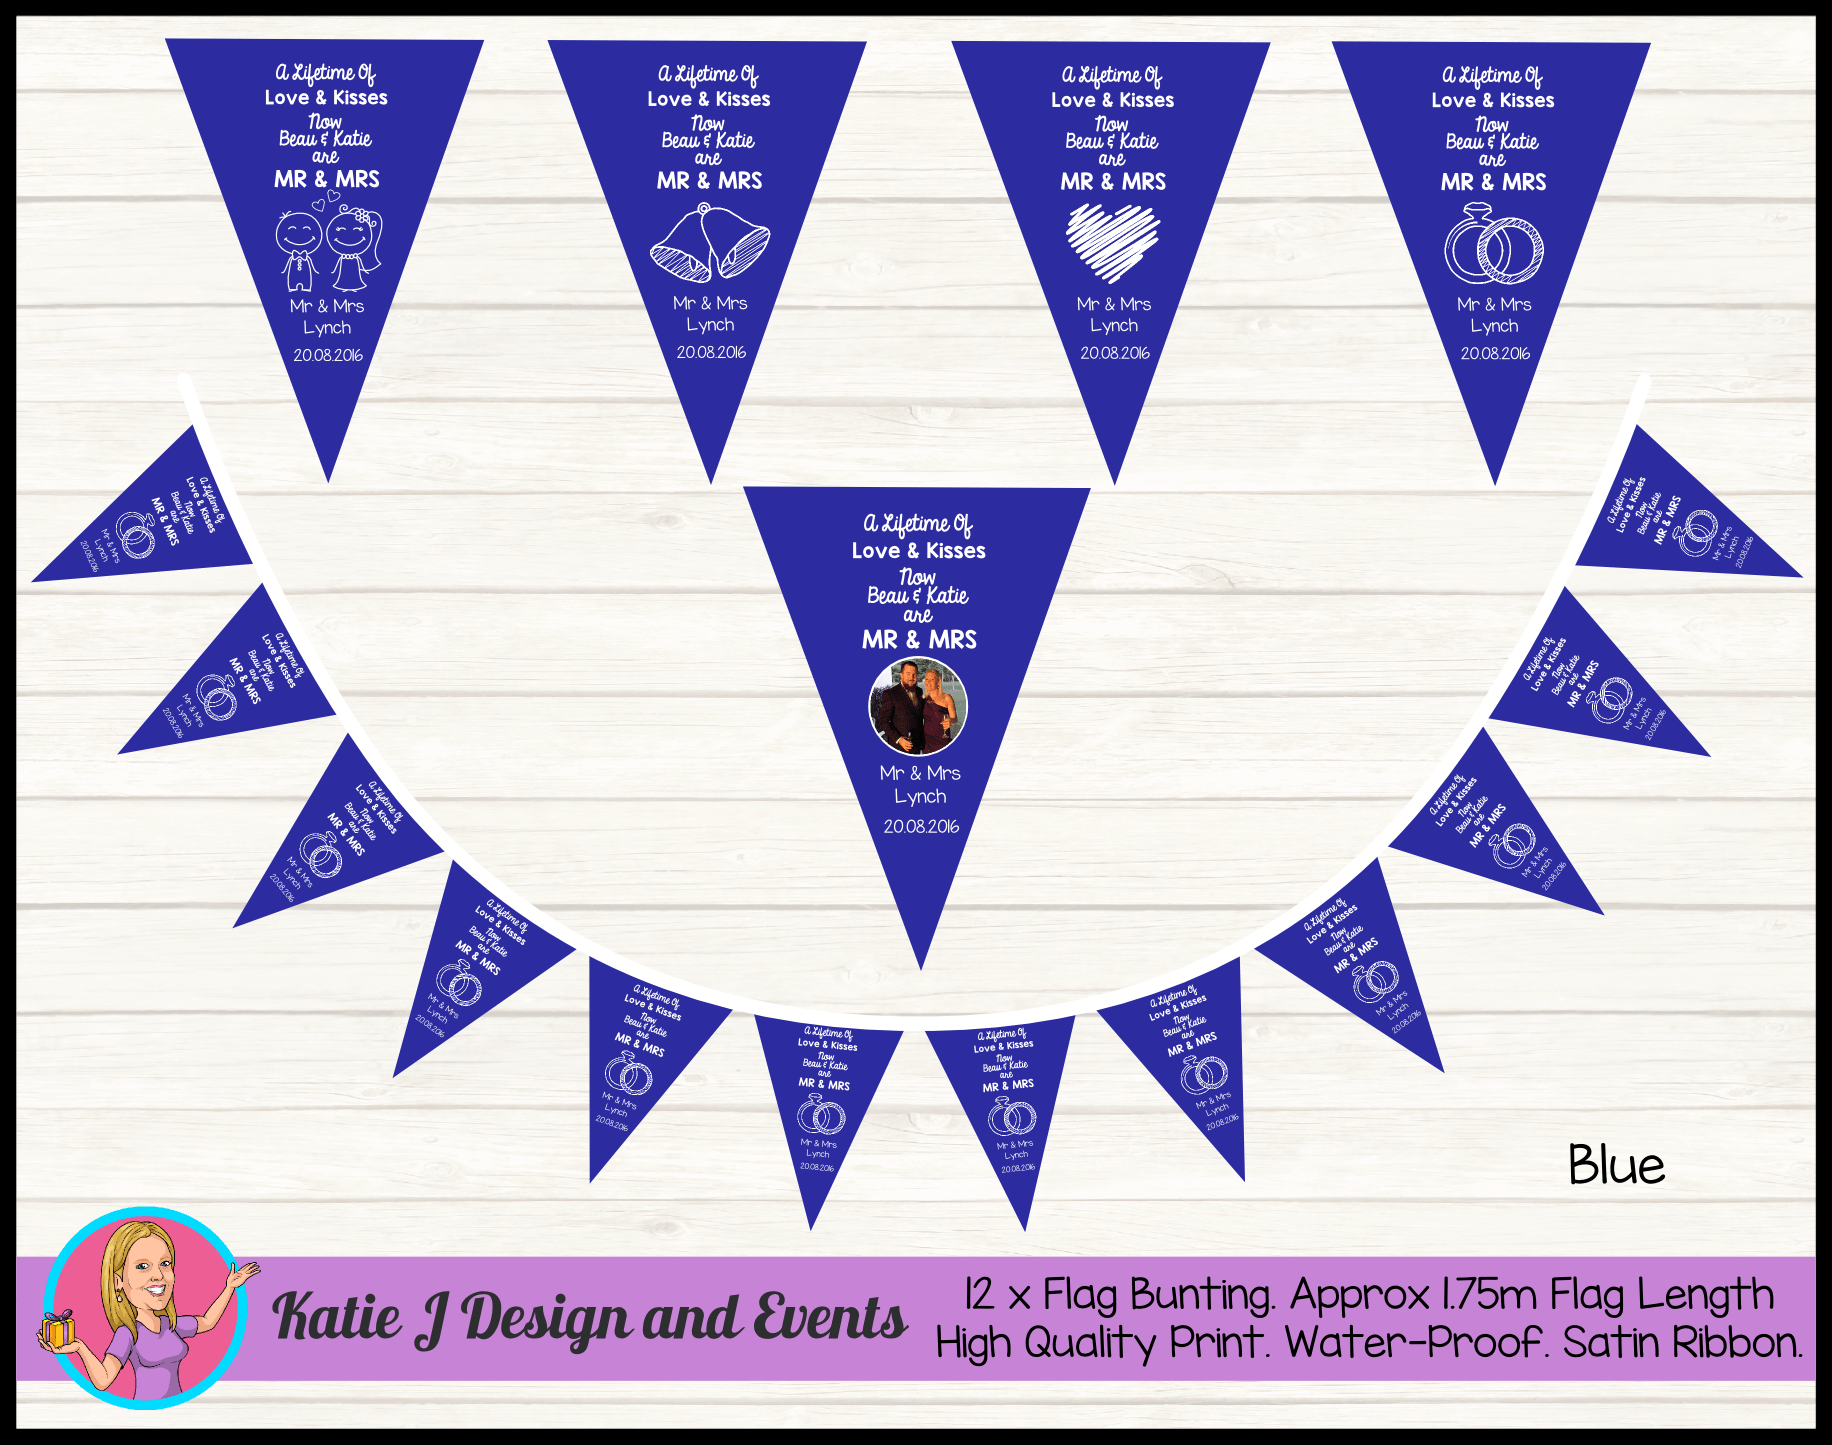 Personalised LIFETIME OF LOVE Wedding Flag Bunting Banners